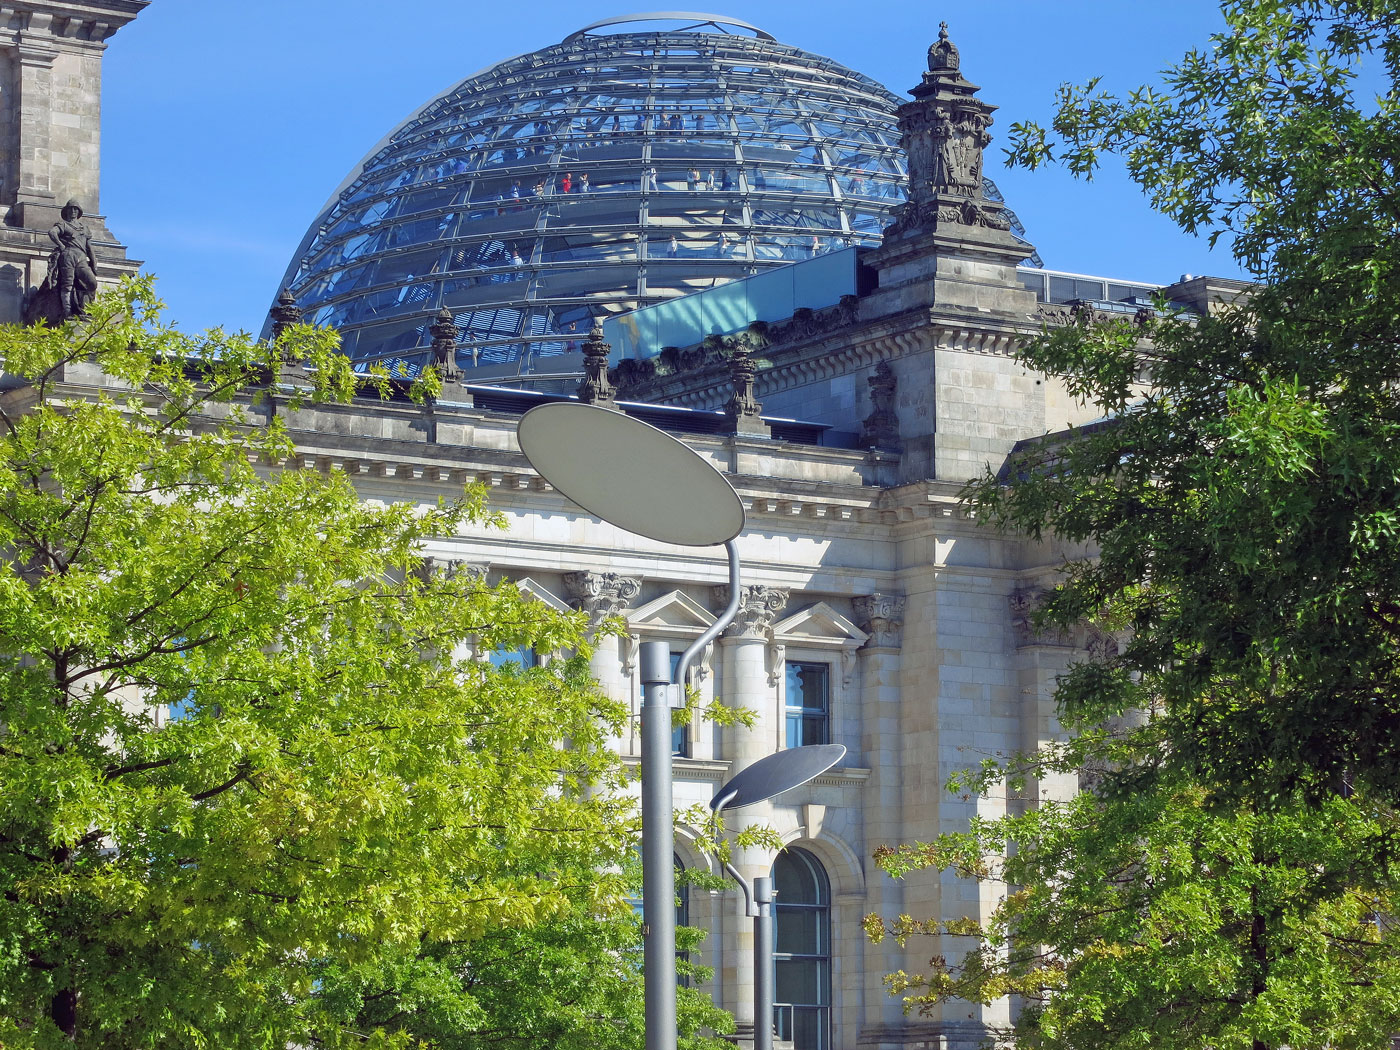 glass-dome-of-the-Reichstag